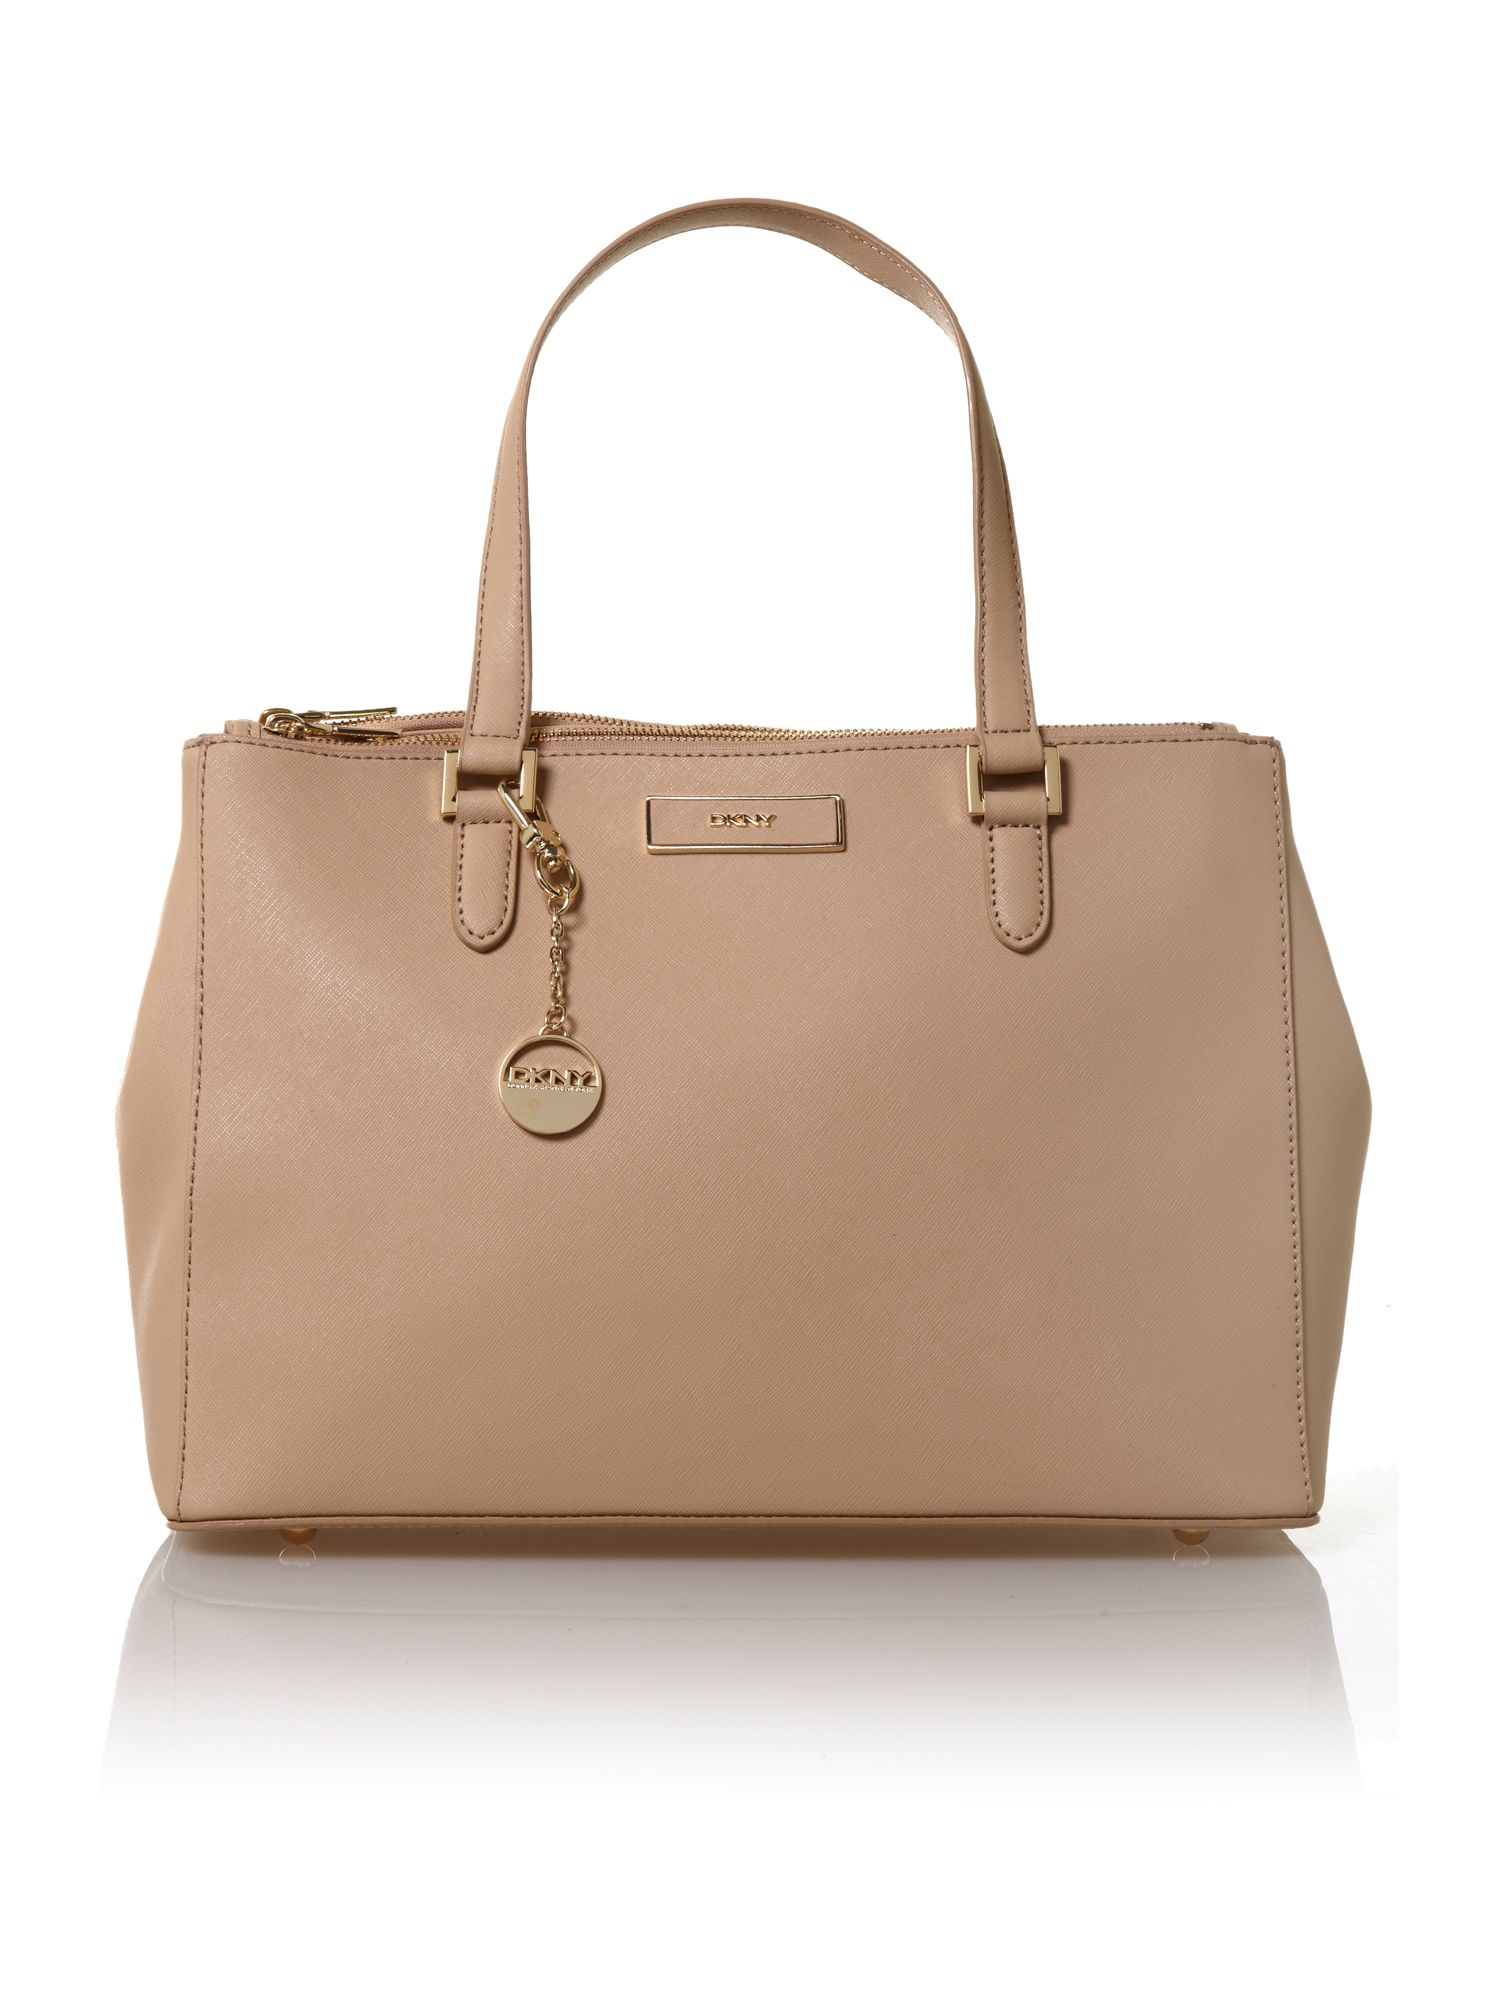 Saffiano neutral tote bag